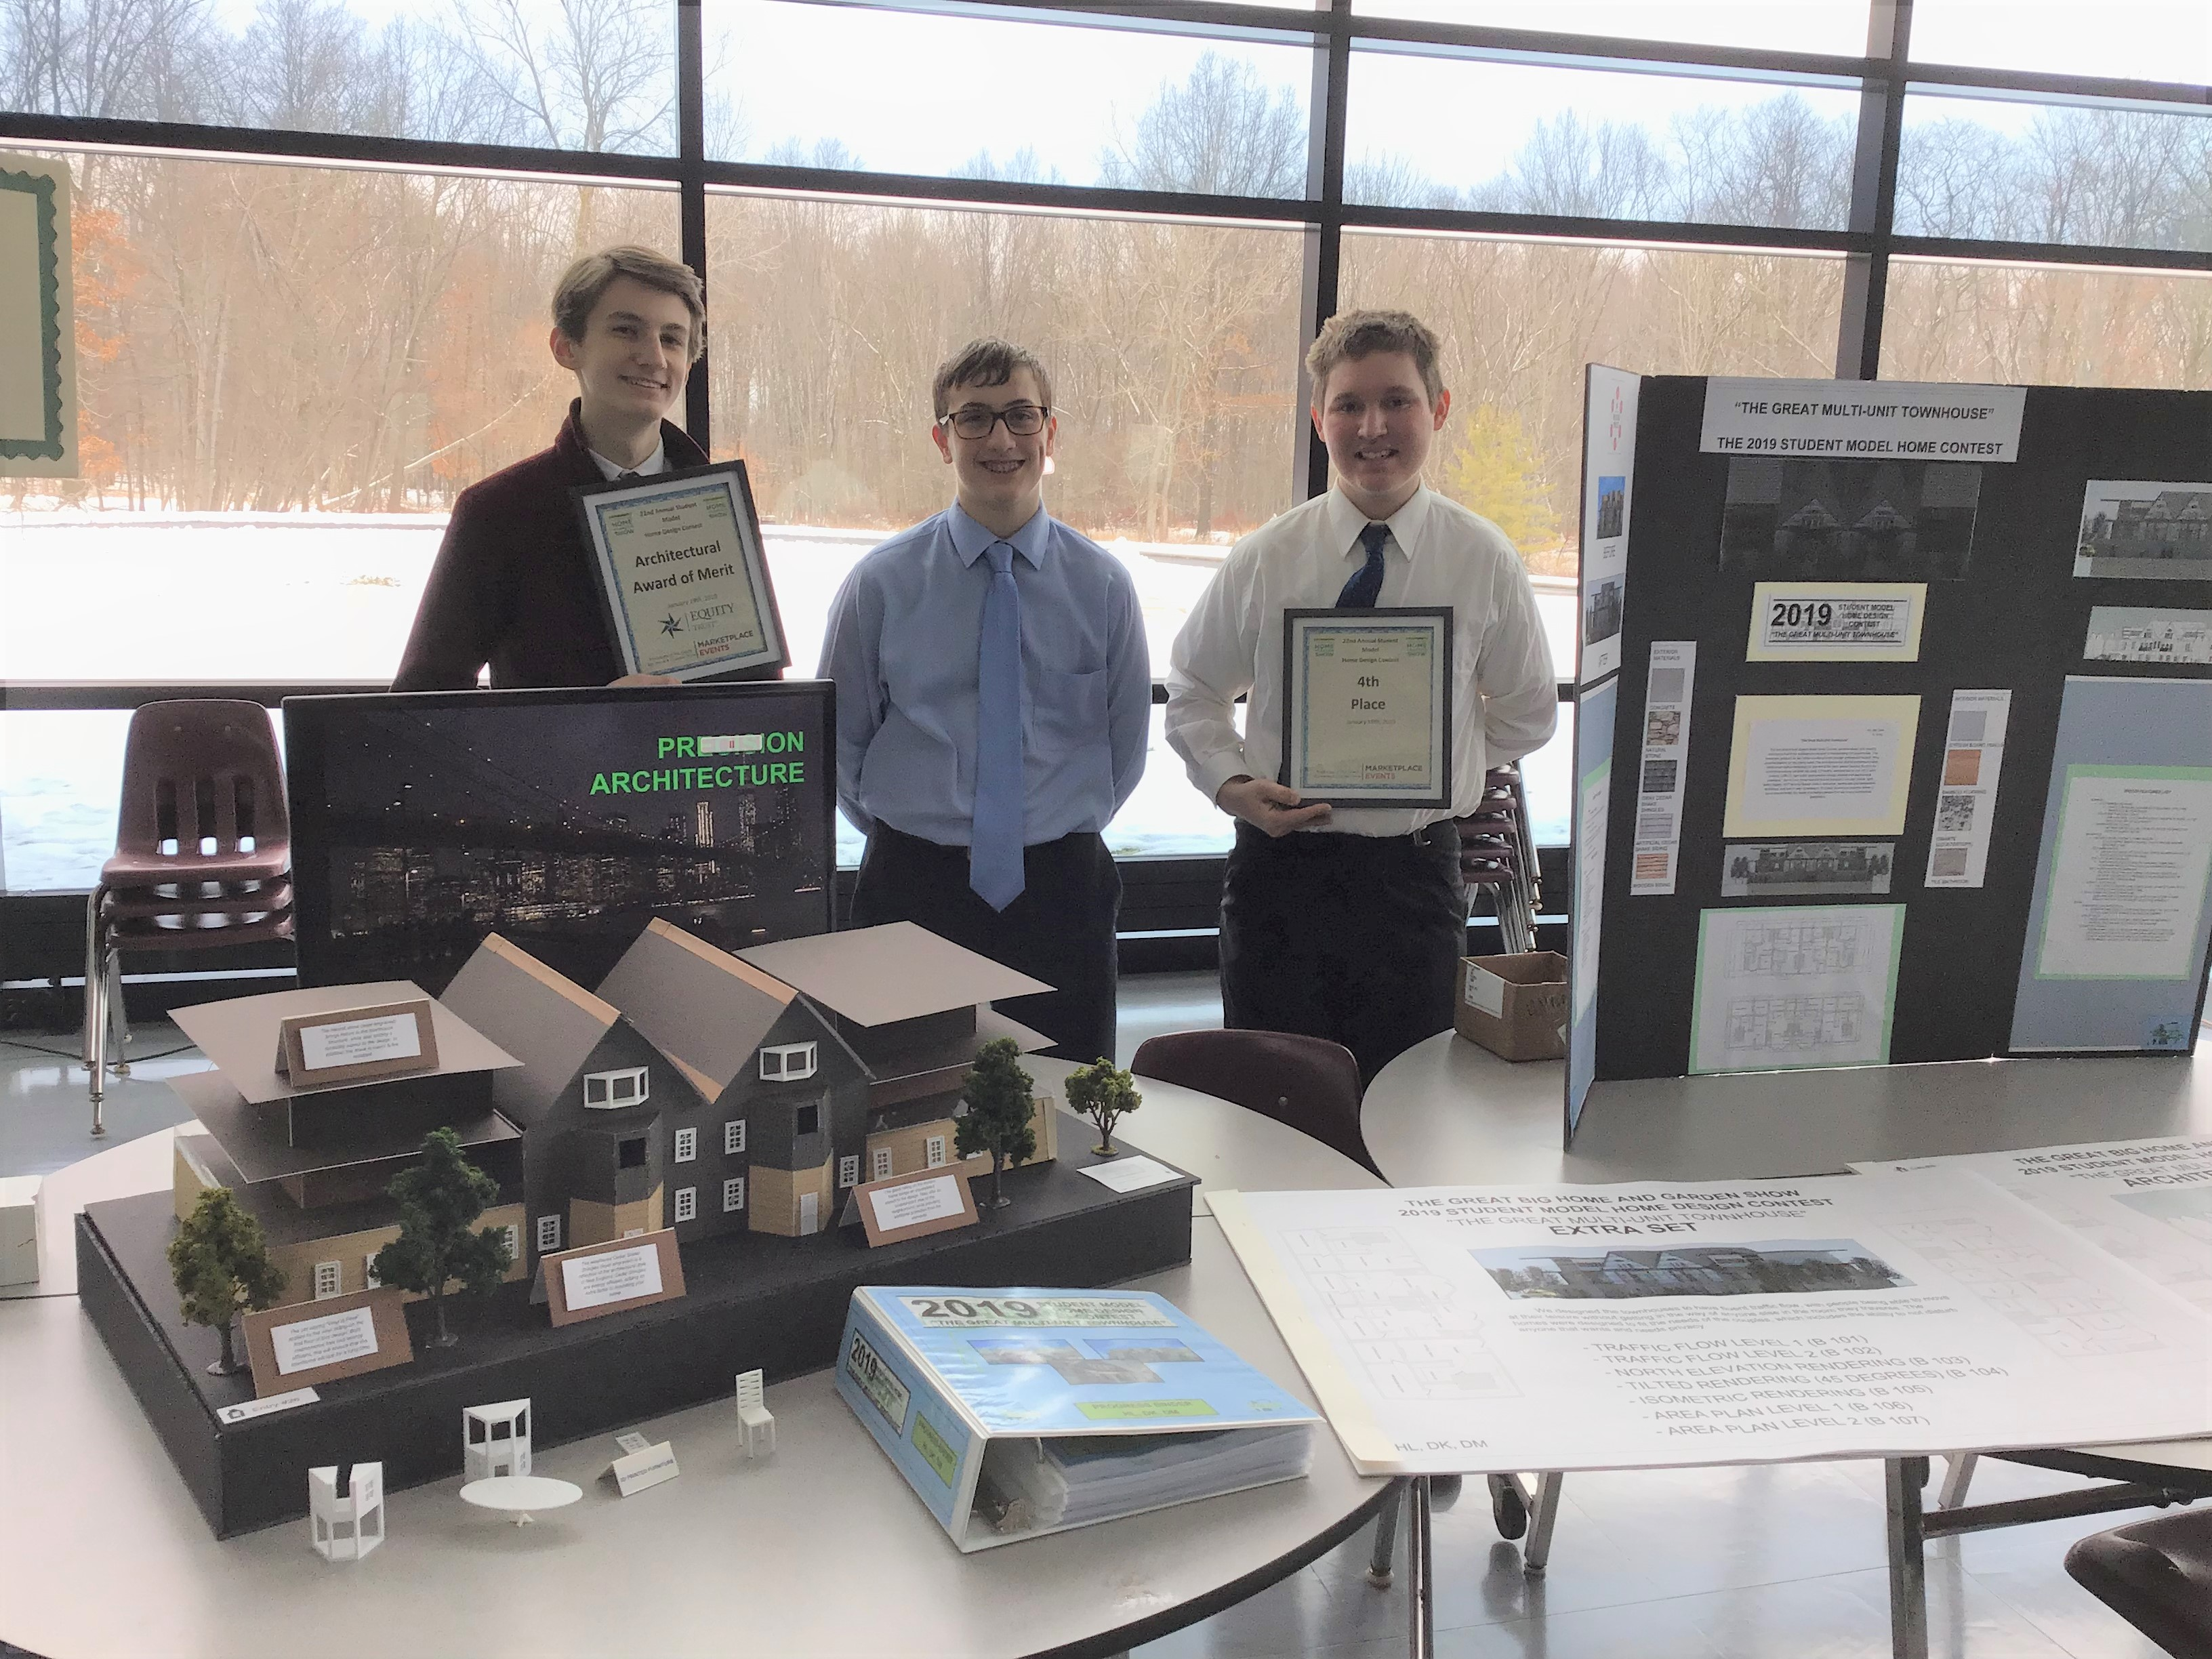 Student Model Home Design Contest - 4th Place team - Drew Mather, Danny Keenan, Henry Levenberg 1-19-19